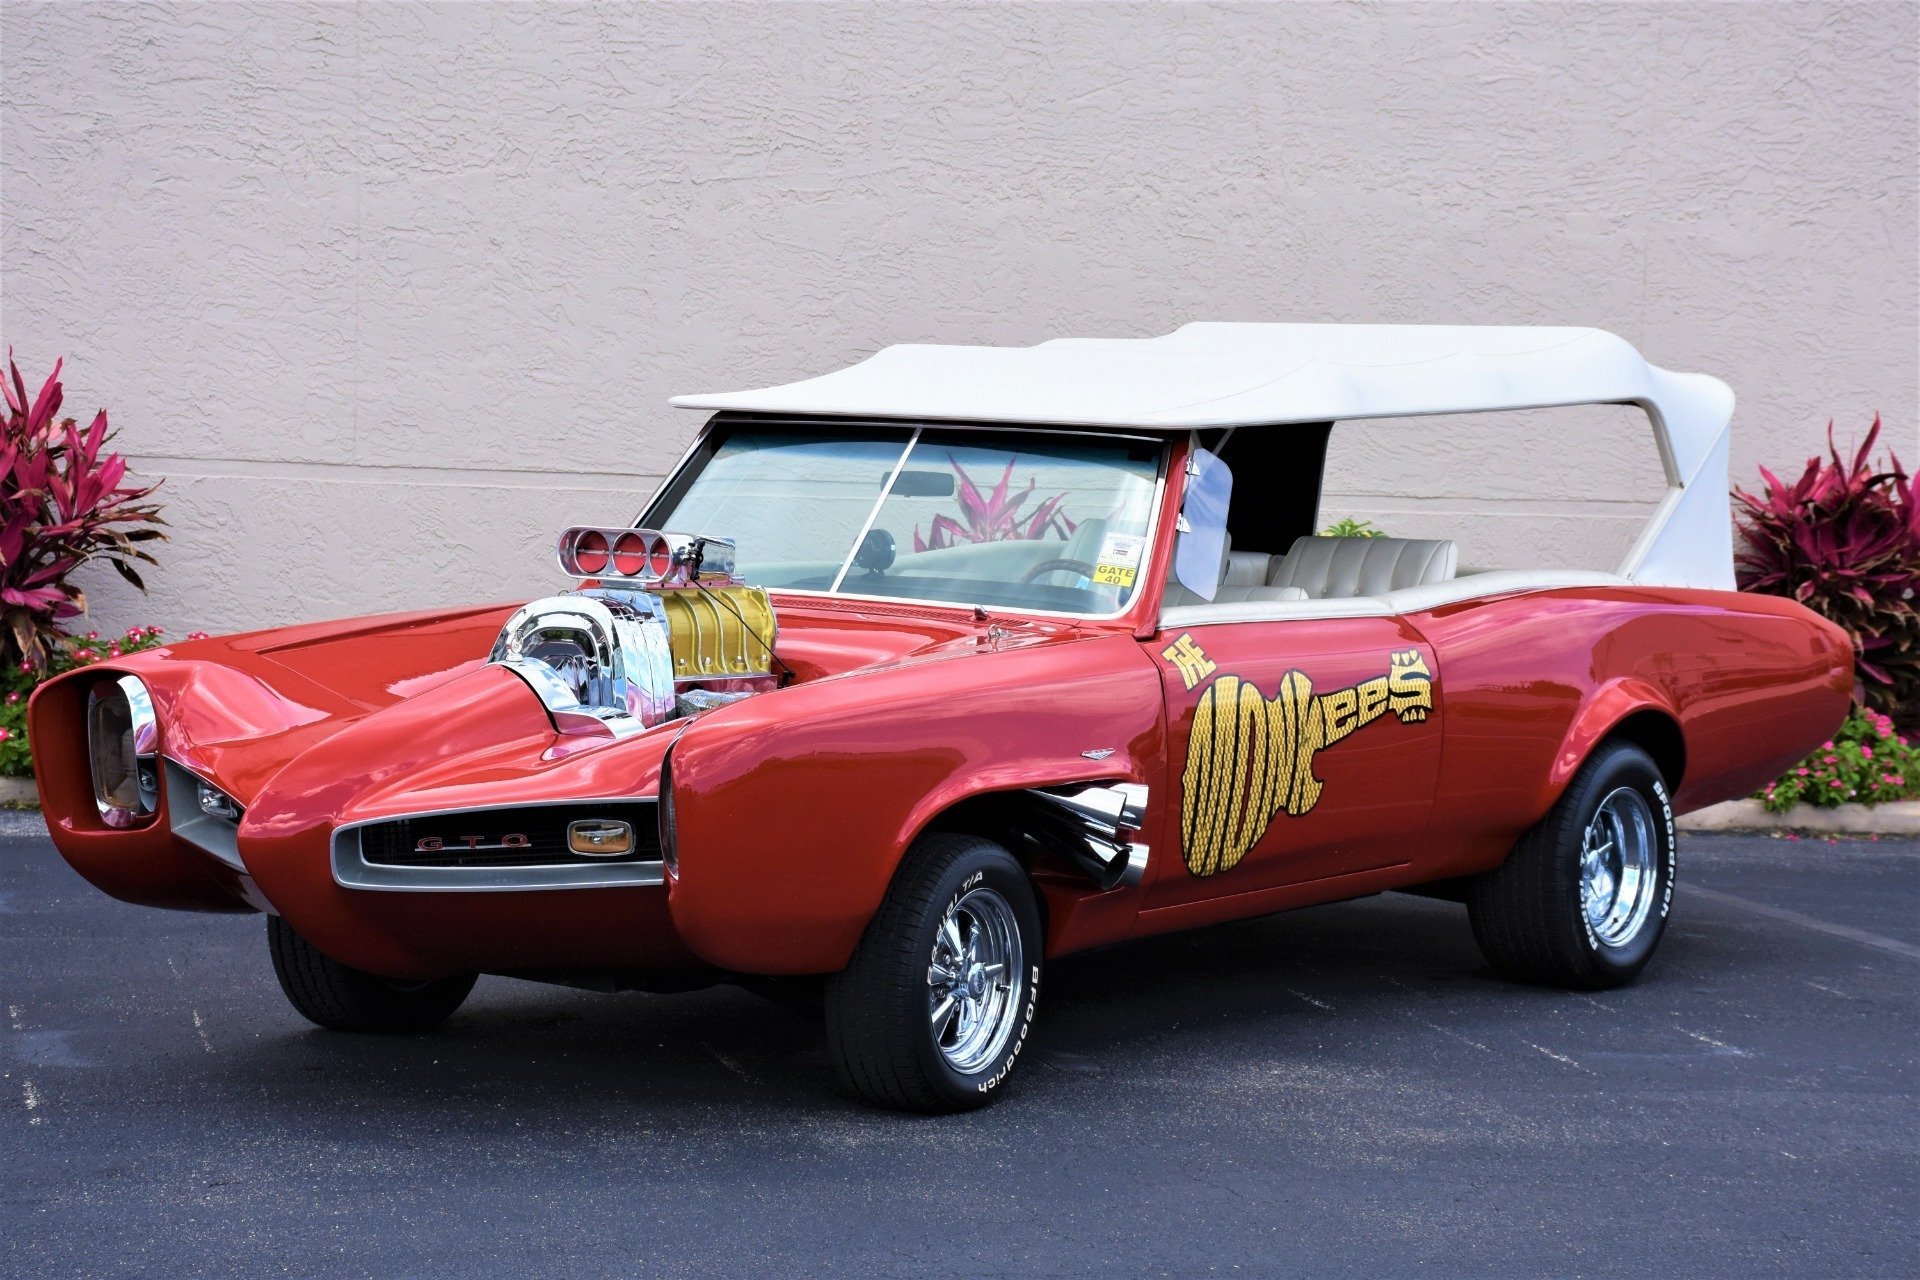 1967 Z Movie Car Monkees Mobile Pontiac GTO | Ideal Classic Cars LLC